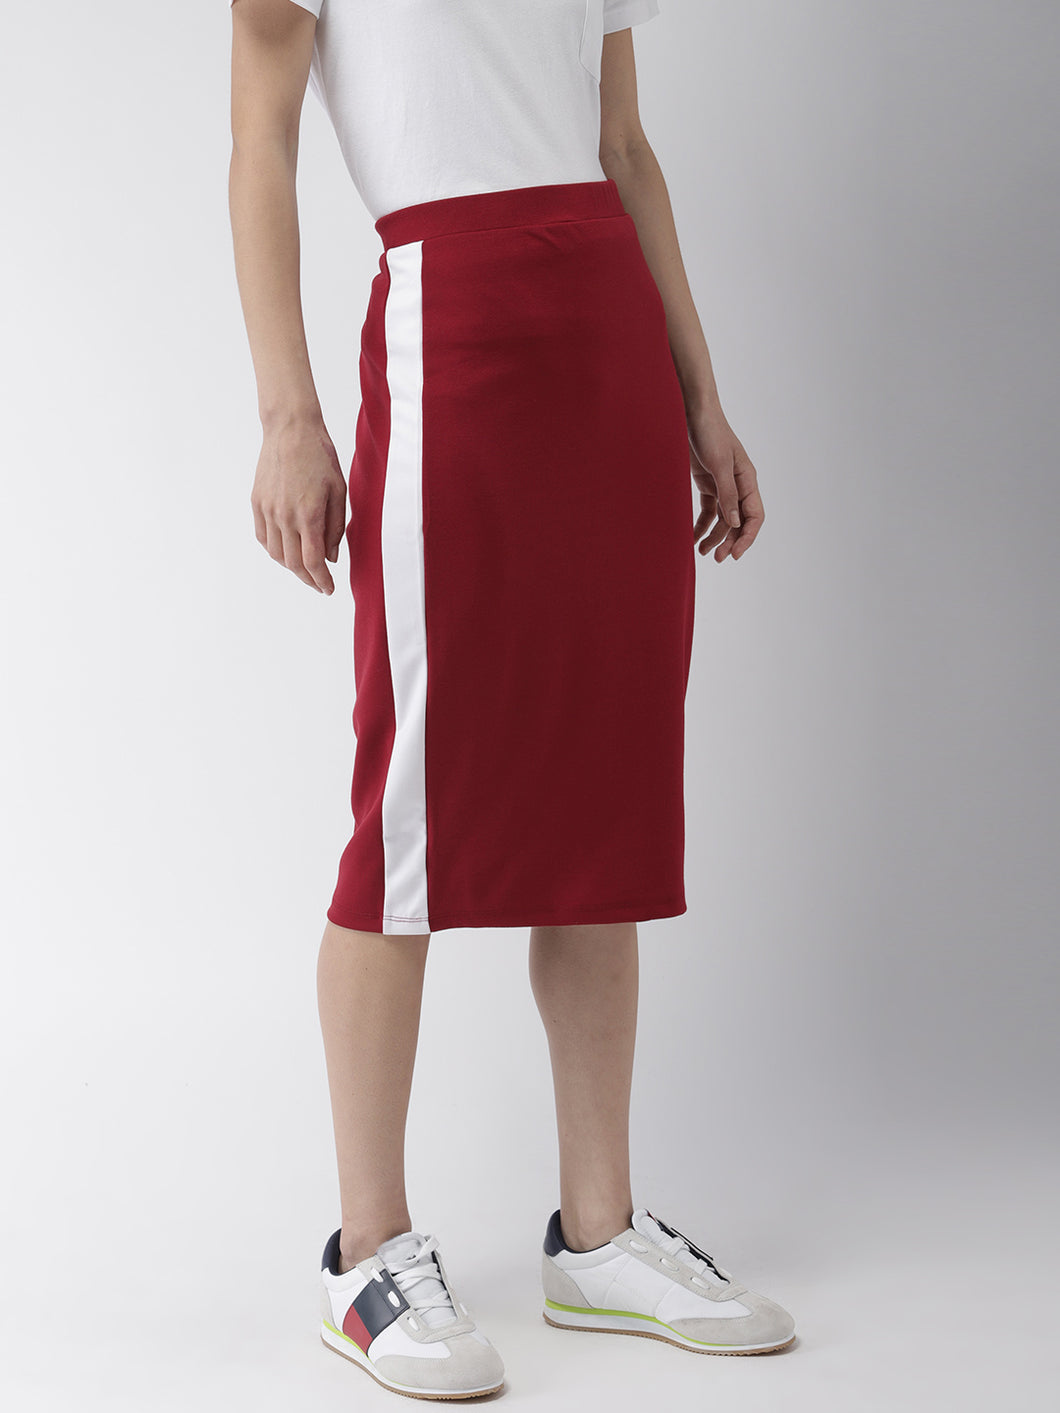 Red Solid Pencil Skirt